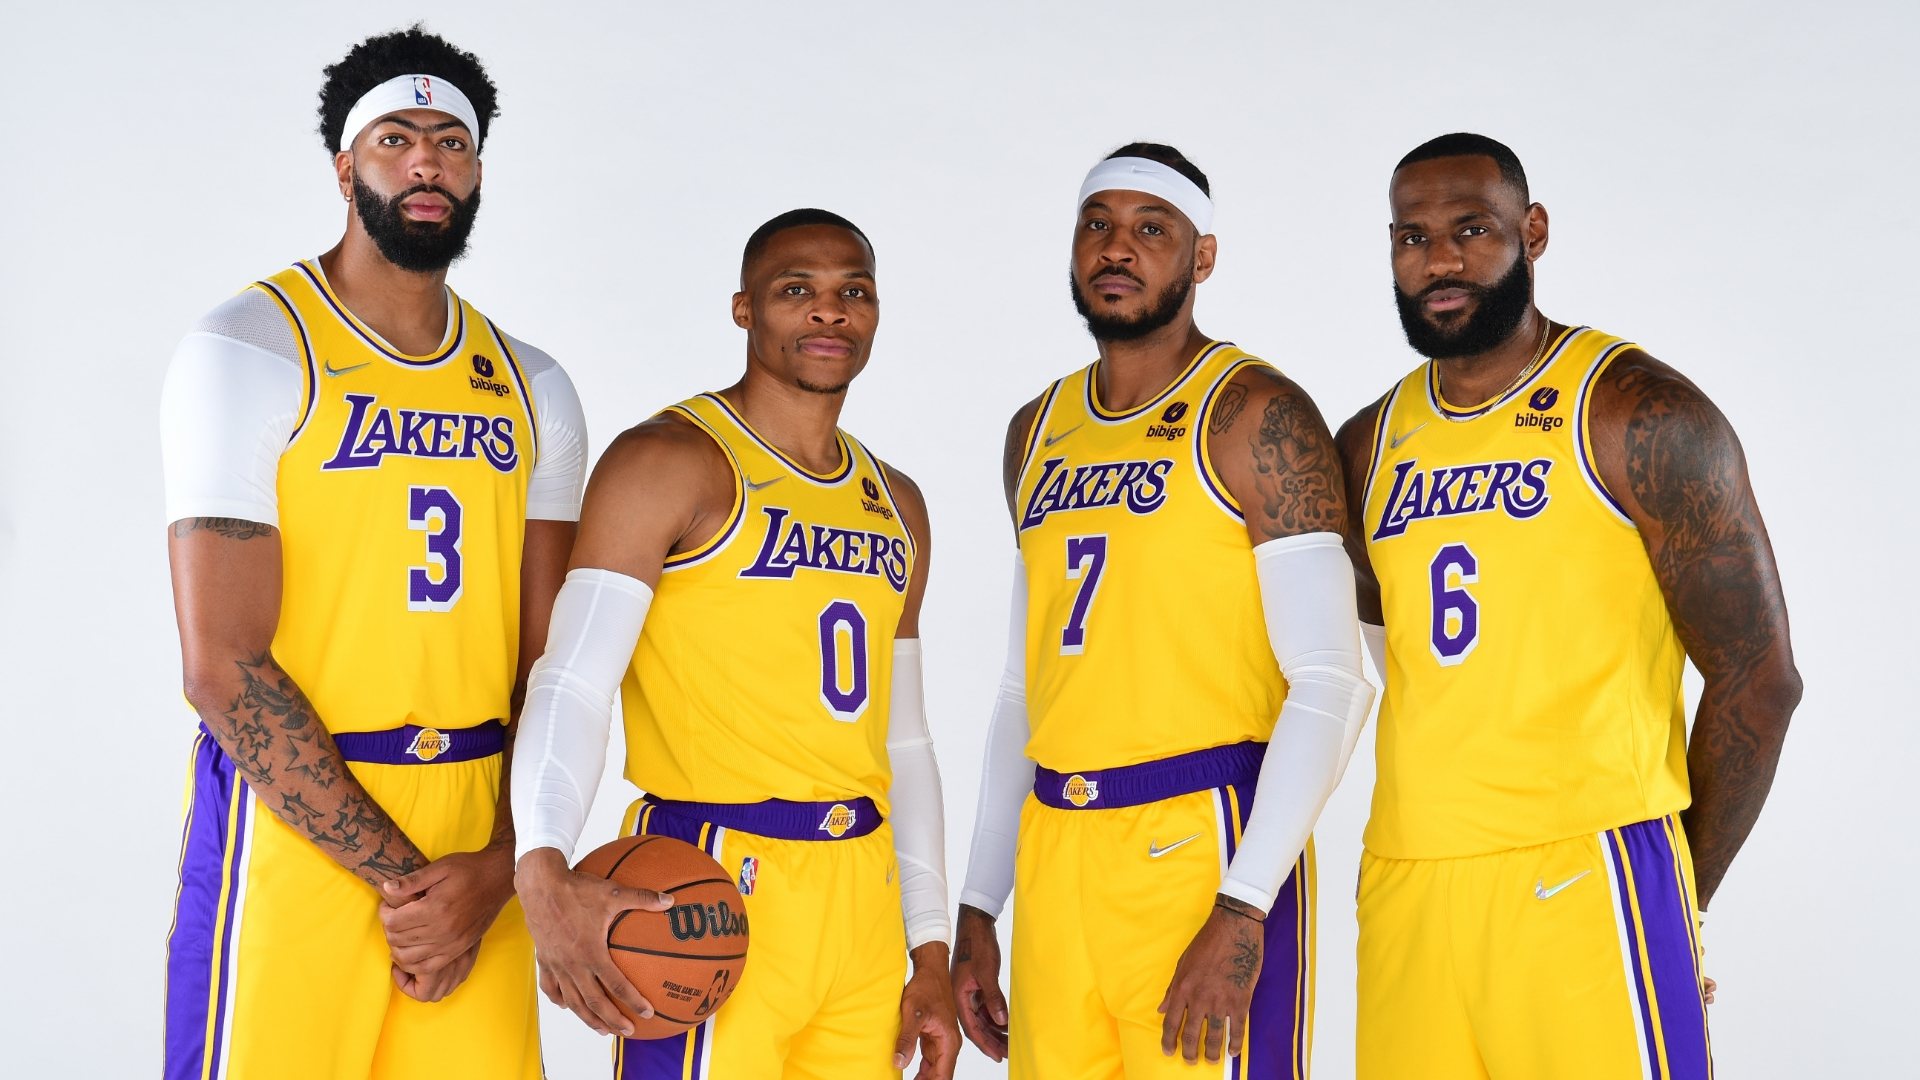 russell westbrook and carmelo anthony are two of the new faces on the lakers in 2021 22 15qh2r86vt3of1p21dm9oeayed